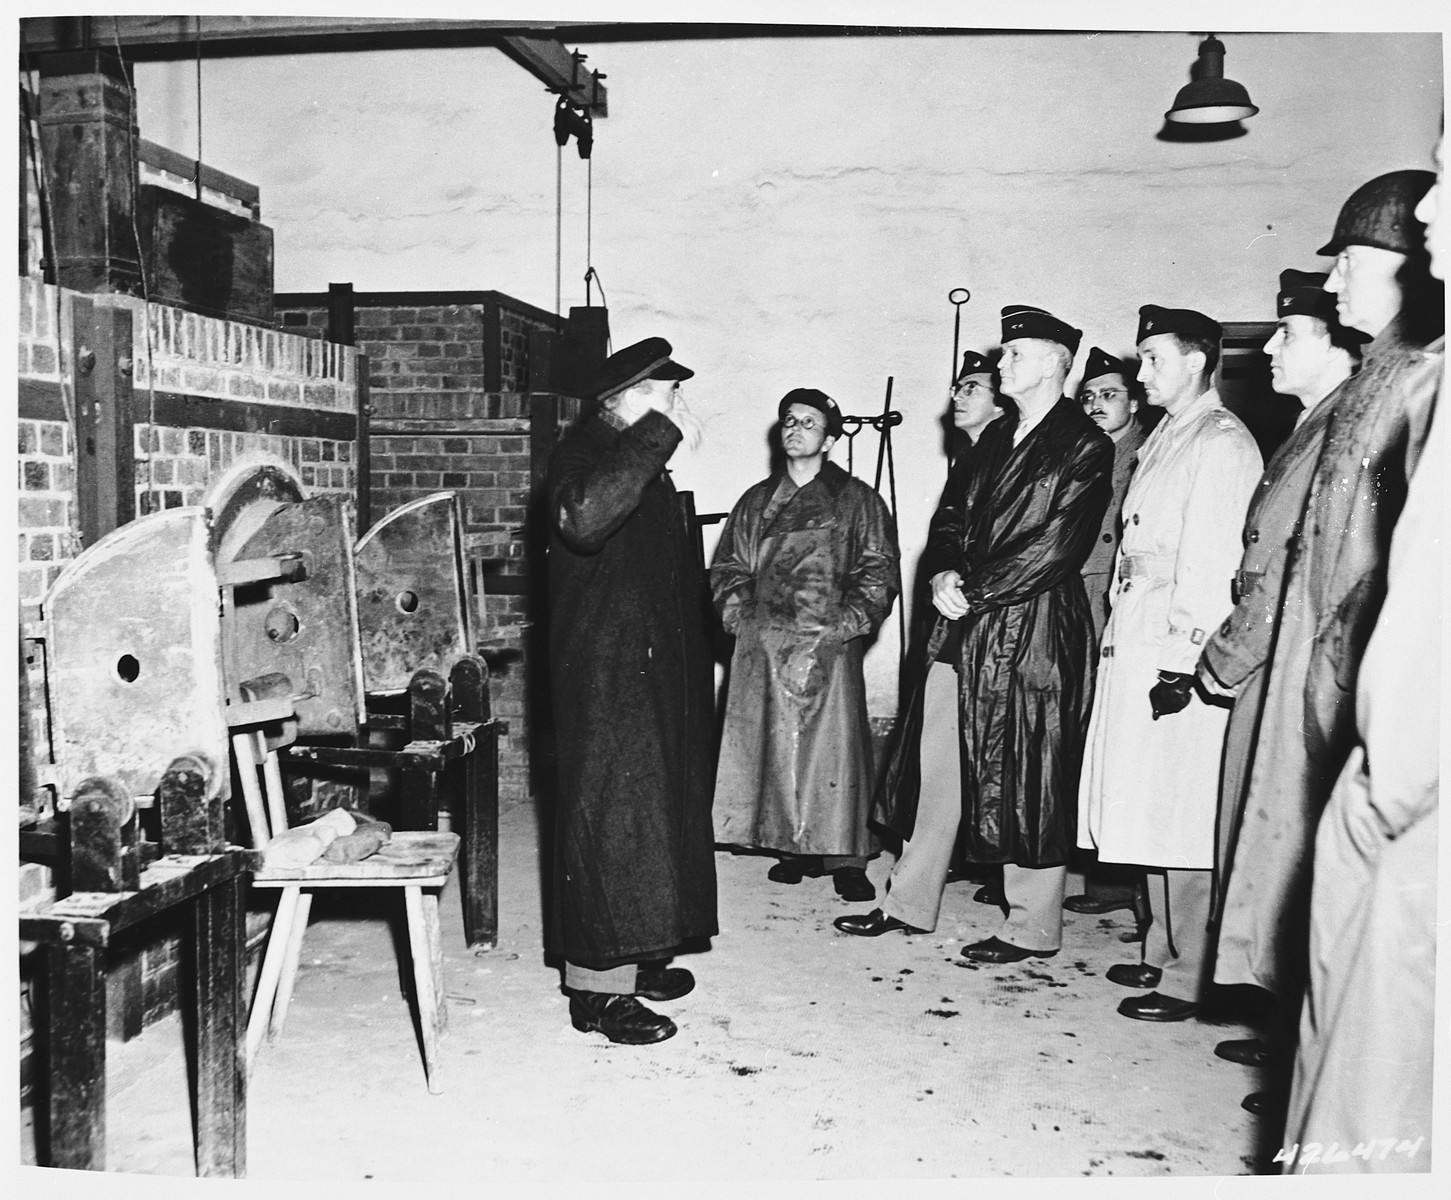 A former prisoner explains the working of the crematoria in Dachau to a delegation of American officers.  Among those pictured is Major General William R. Arnold (fourth from right), Chief of Chaplains Corps, 7th U.S. Army.